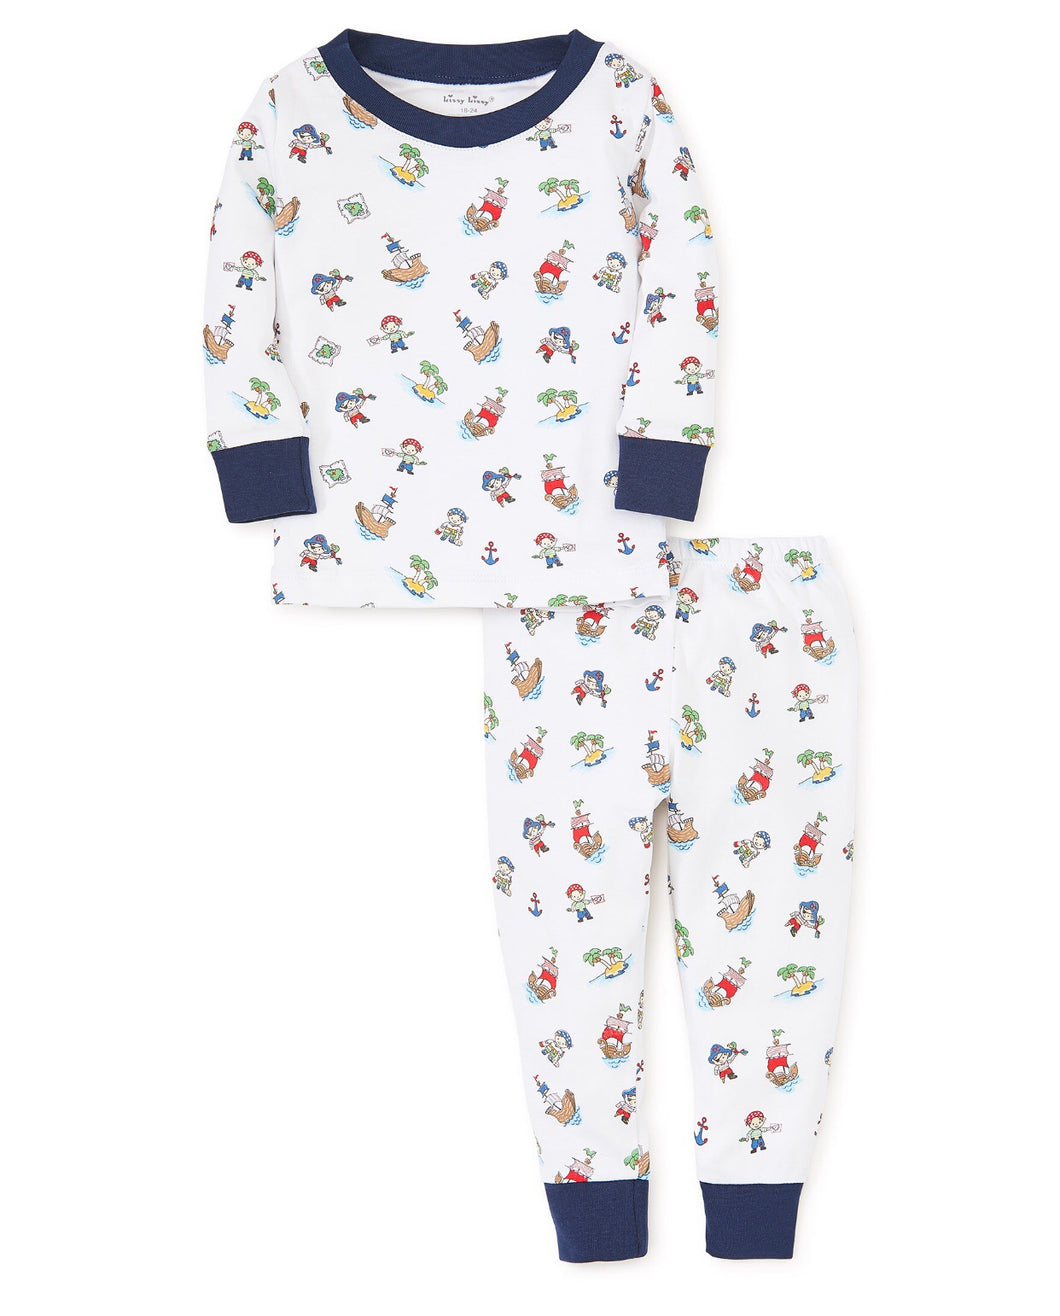 Pirate Treasure Long Sleeve Pajama Set